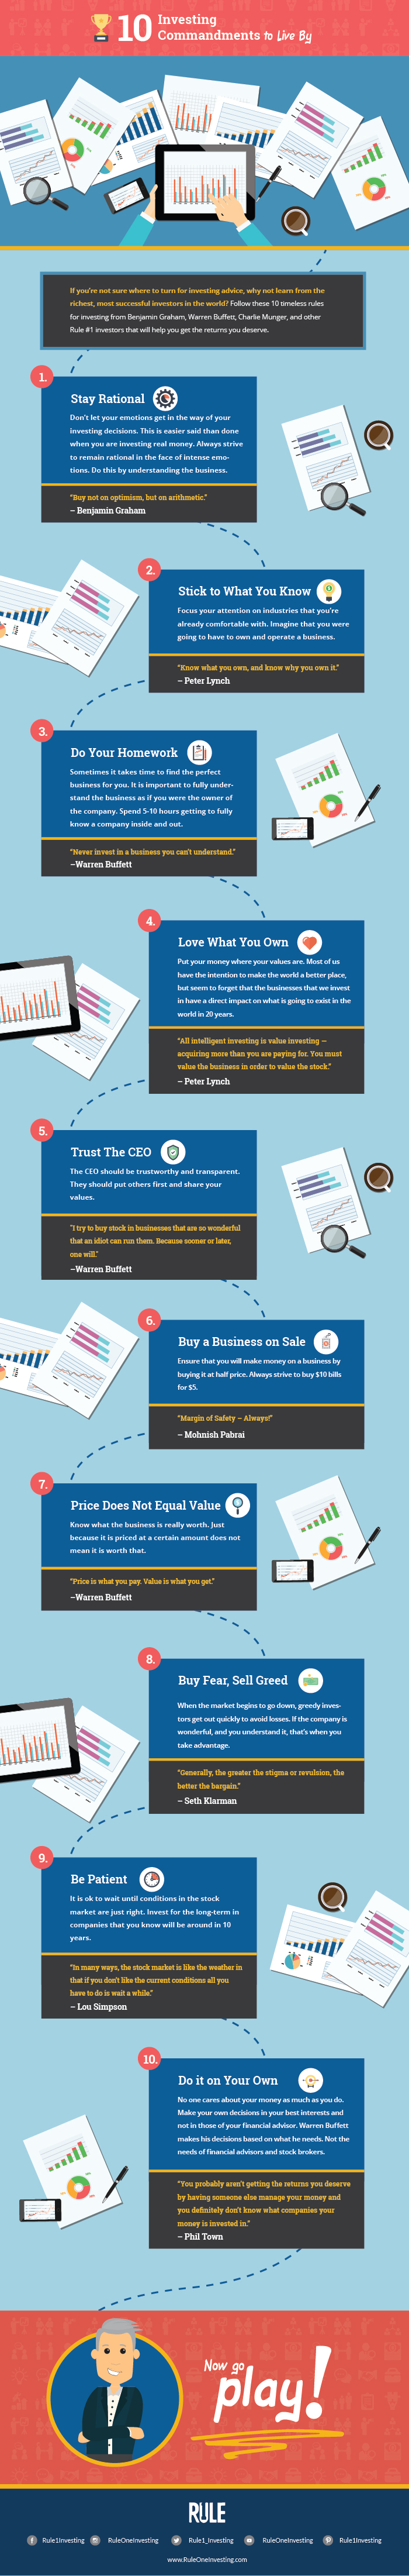 10-rules-successful-investing-infographic